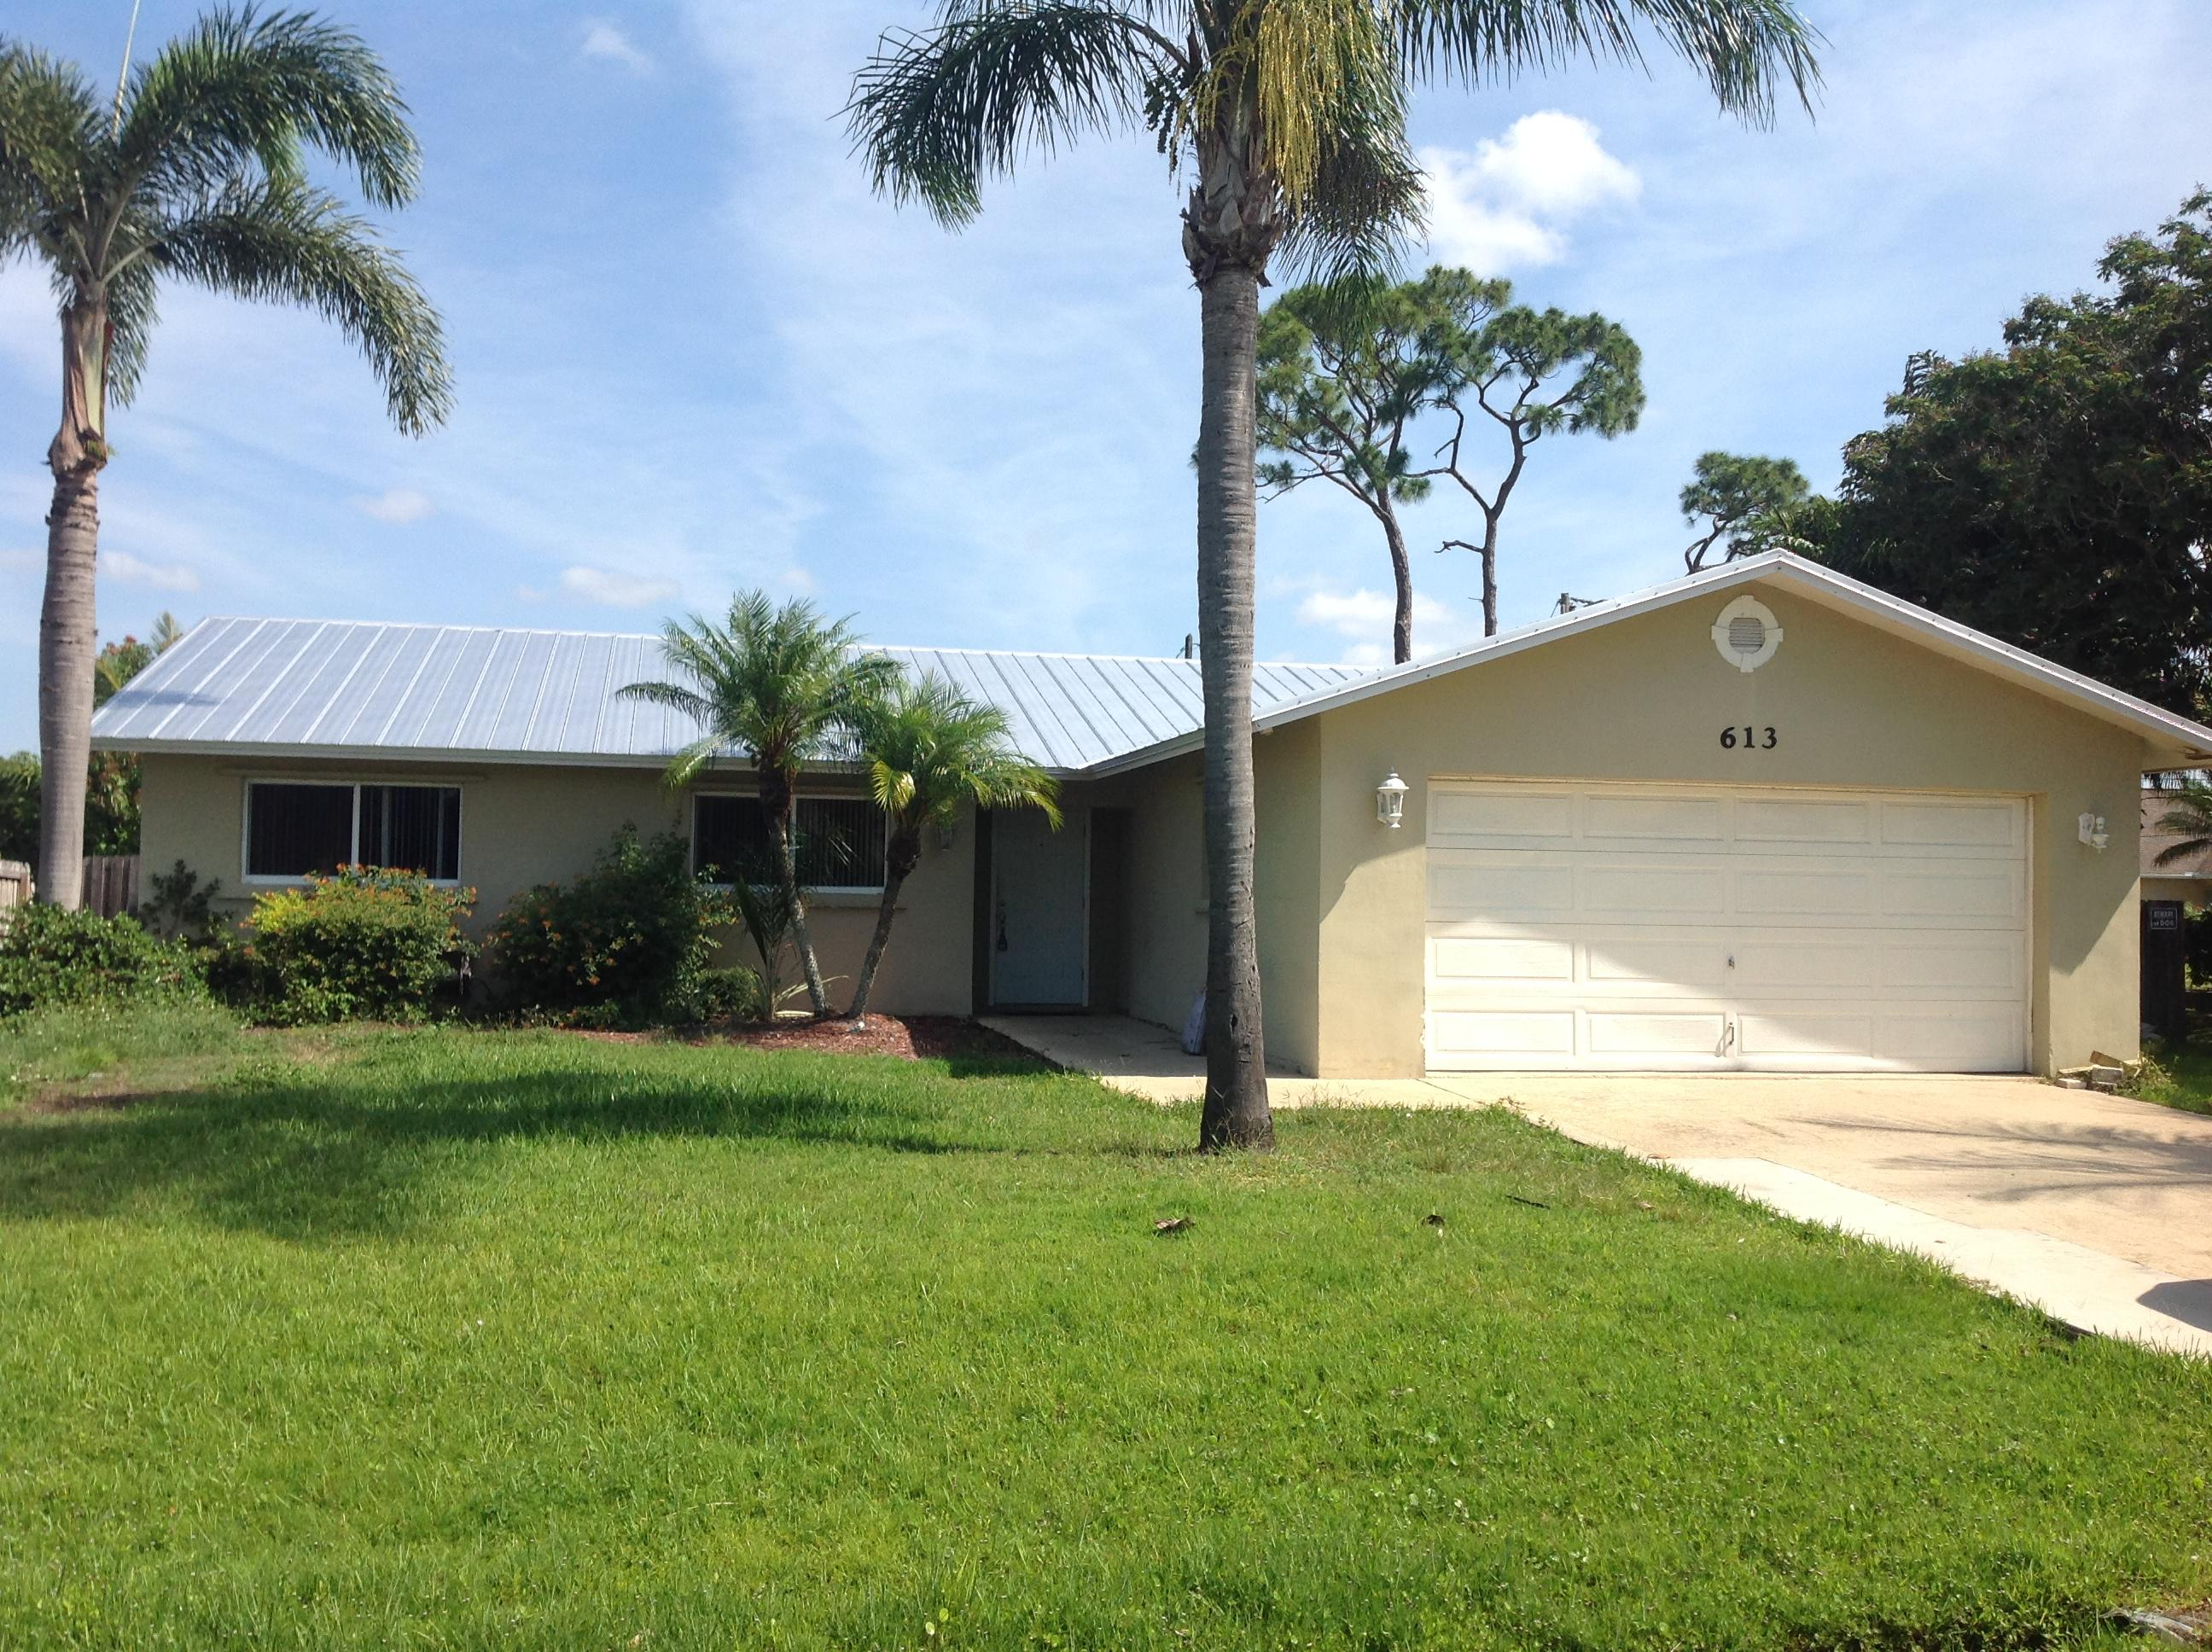 613 SE Capon Terrace - 34983 - FL - Port Saint Lucie